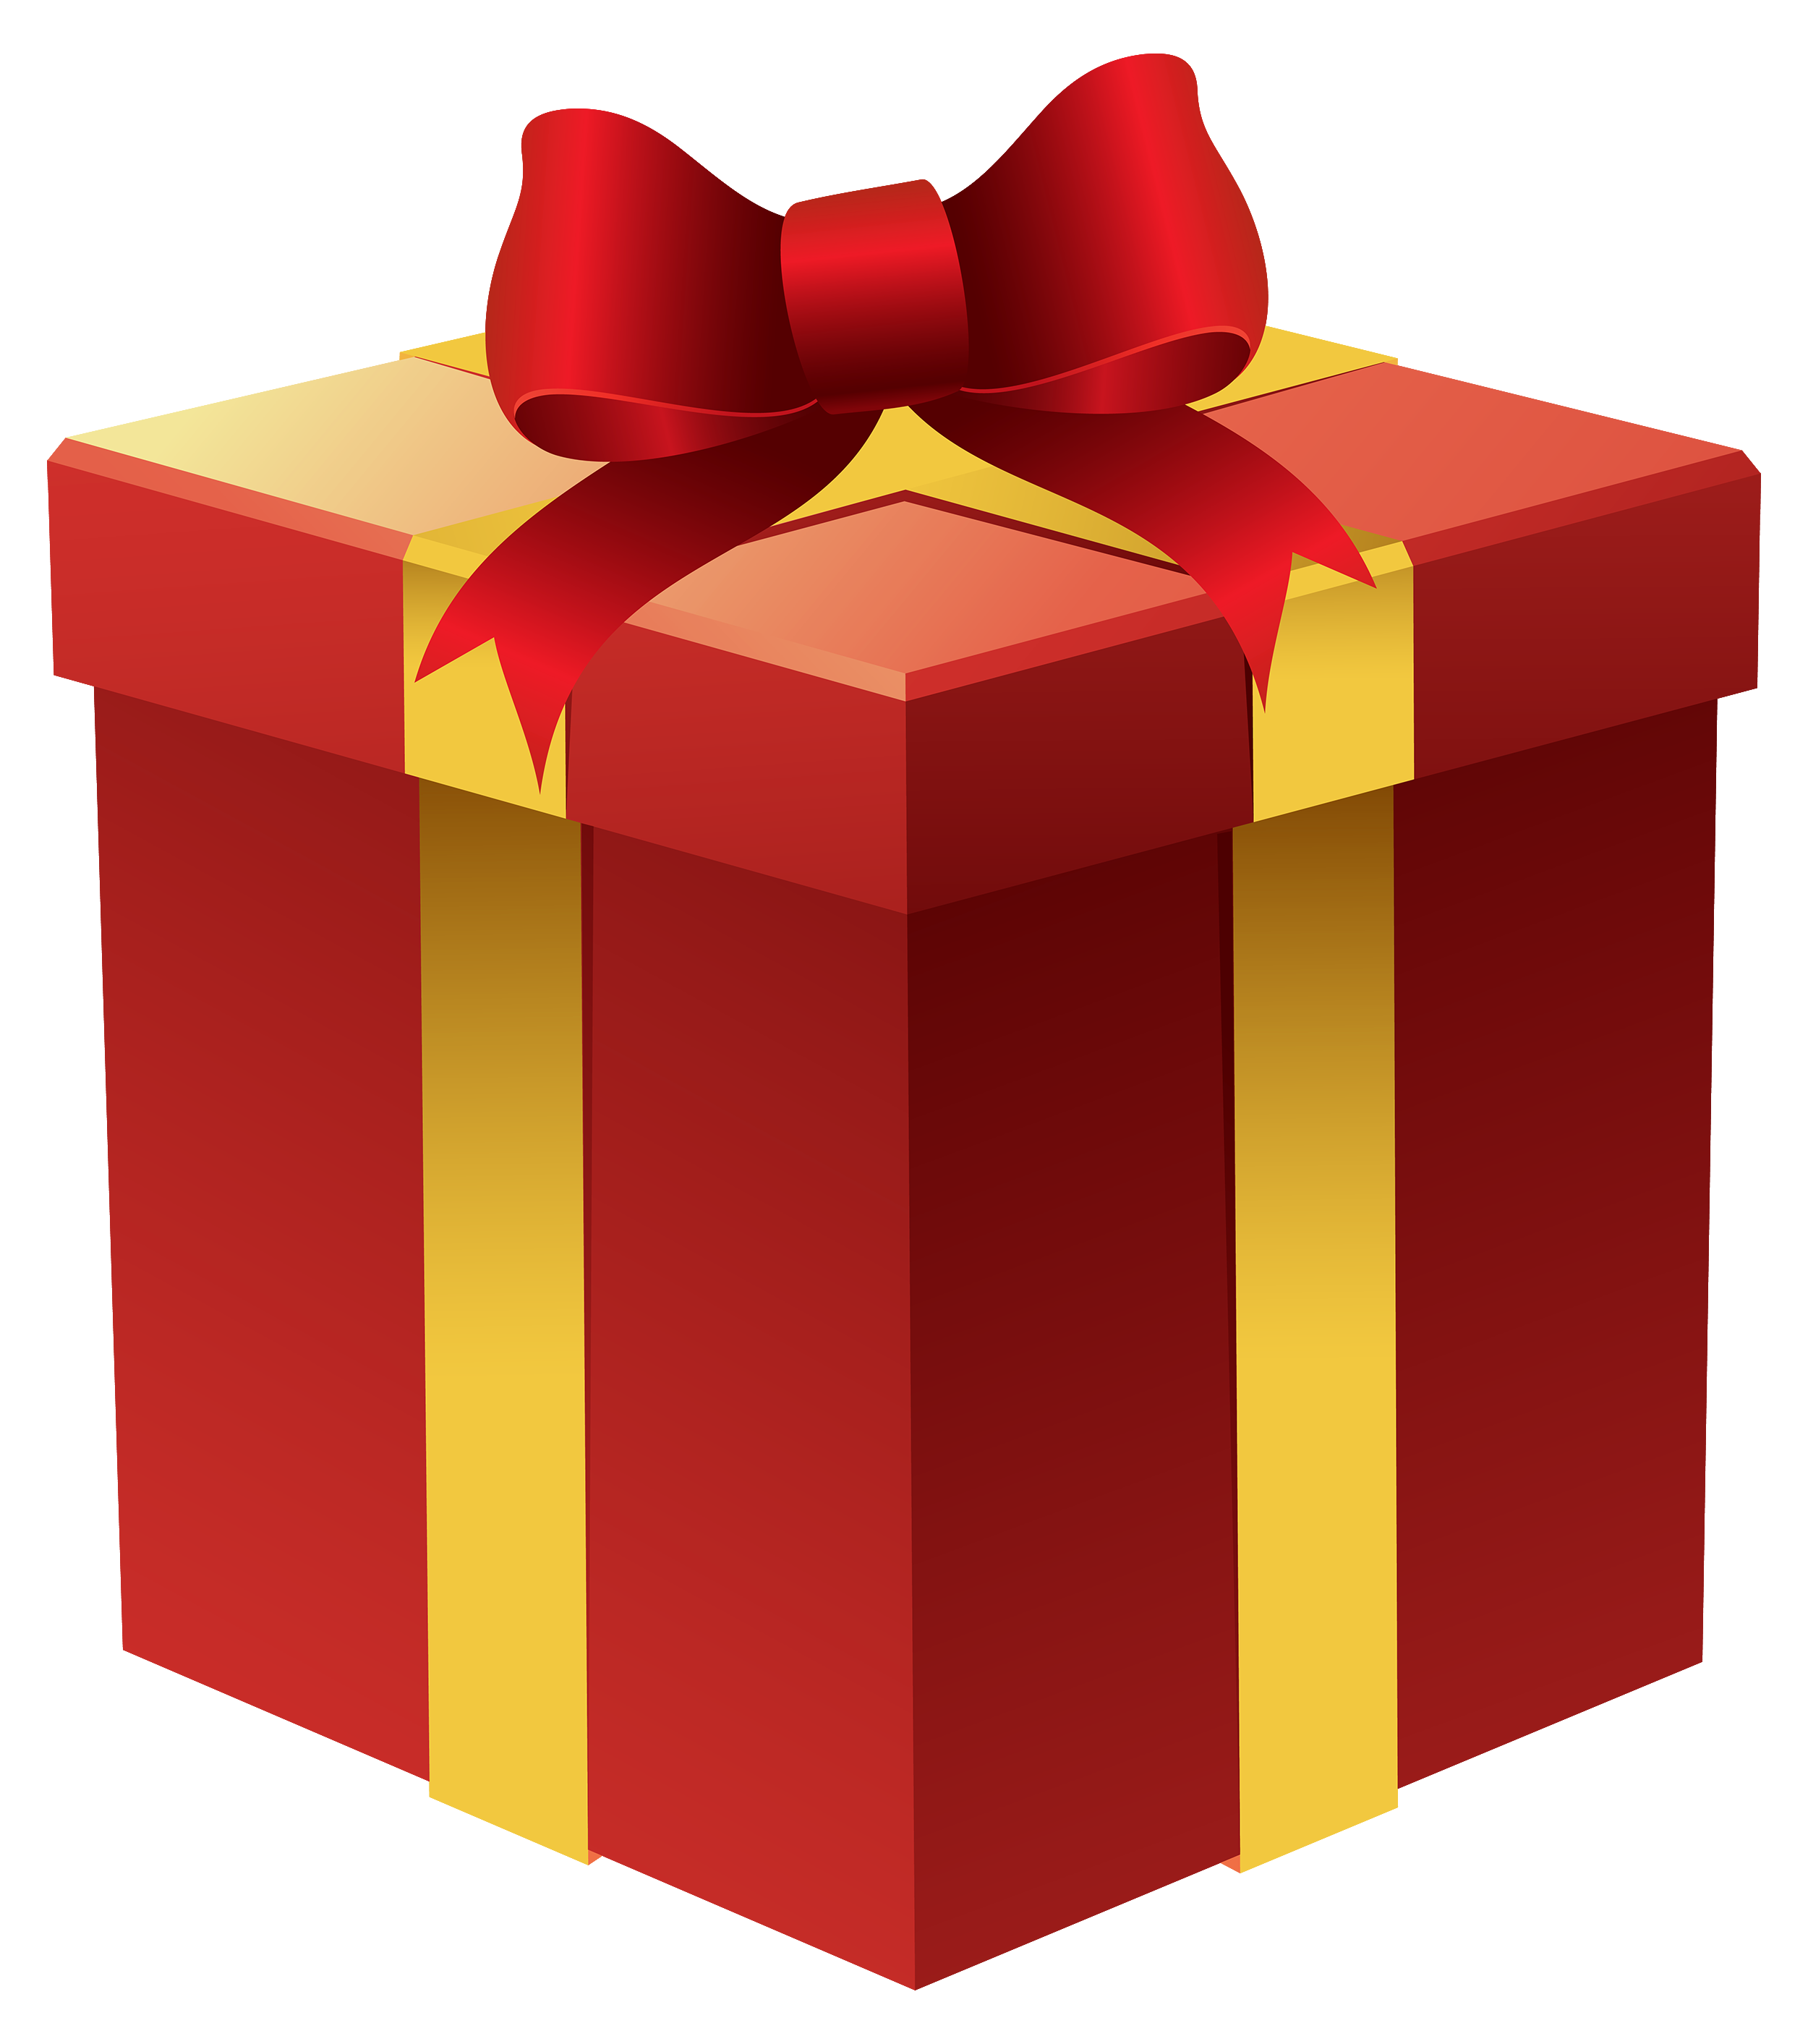 Emoji clipart present. Gift box in red